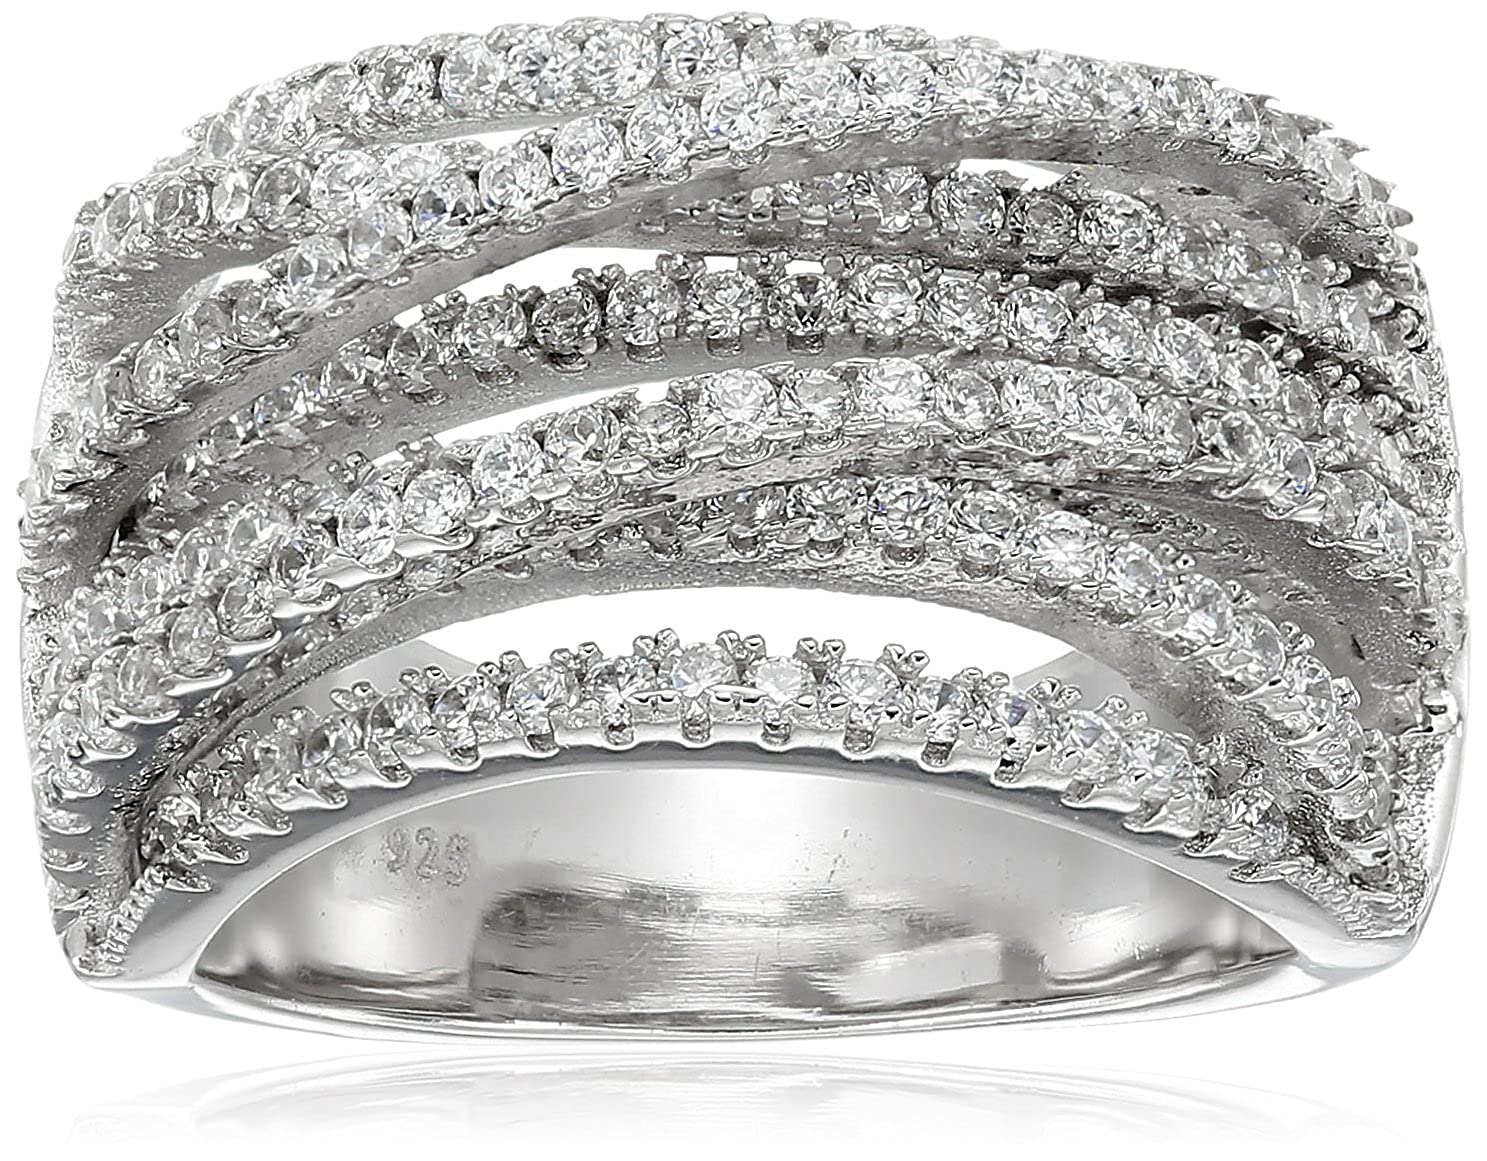 Charles Winston Sterling Silver, Cubic Zirconia Multi Band Ring (1.80 cttw) 1.80 ct. tw Size 8 Charles J. Winston Inc.